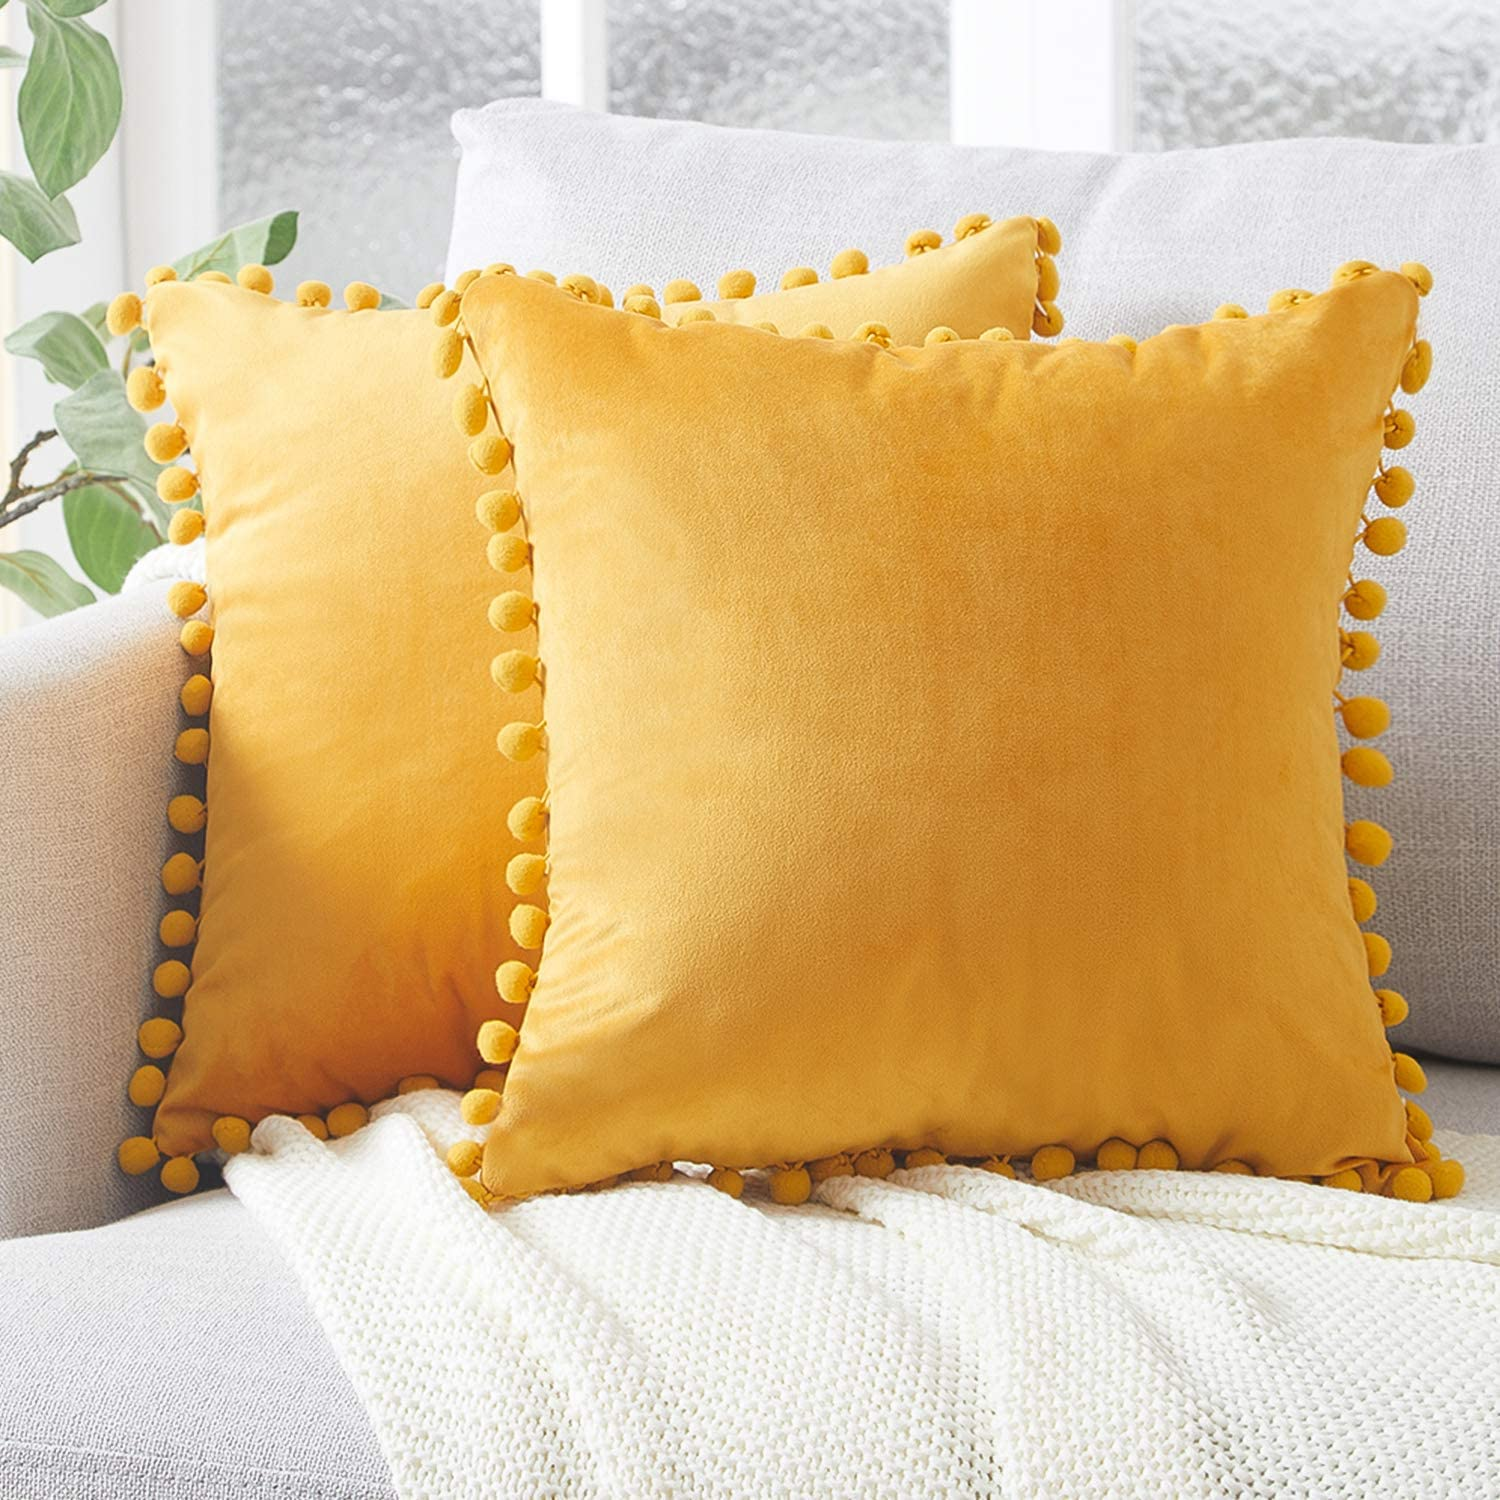 Top Finel Decorative Throw Pillow Covers with Pom Poms Soft Particles Velvet Solid Cushion Covers 20 X 20 for Couch Bedroom Car, Pack of 2, Mustard Yellow: Home & Kitchen